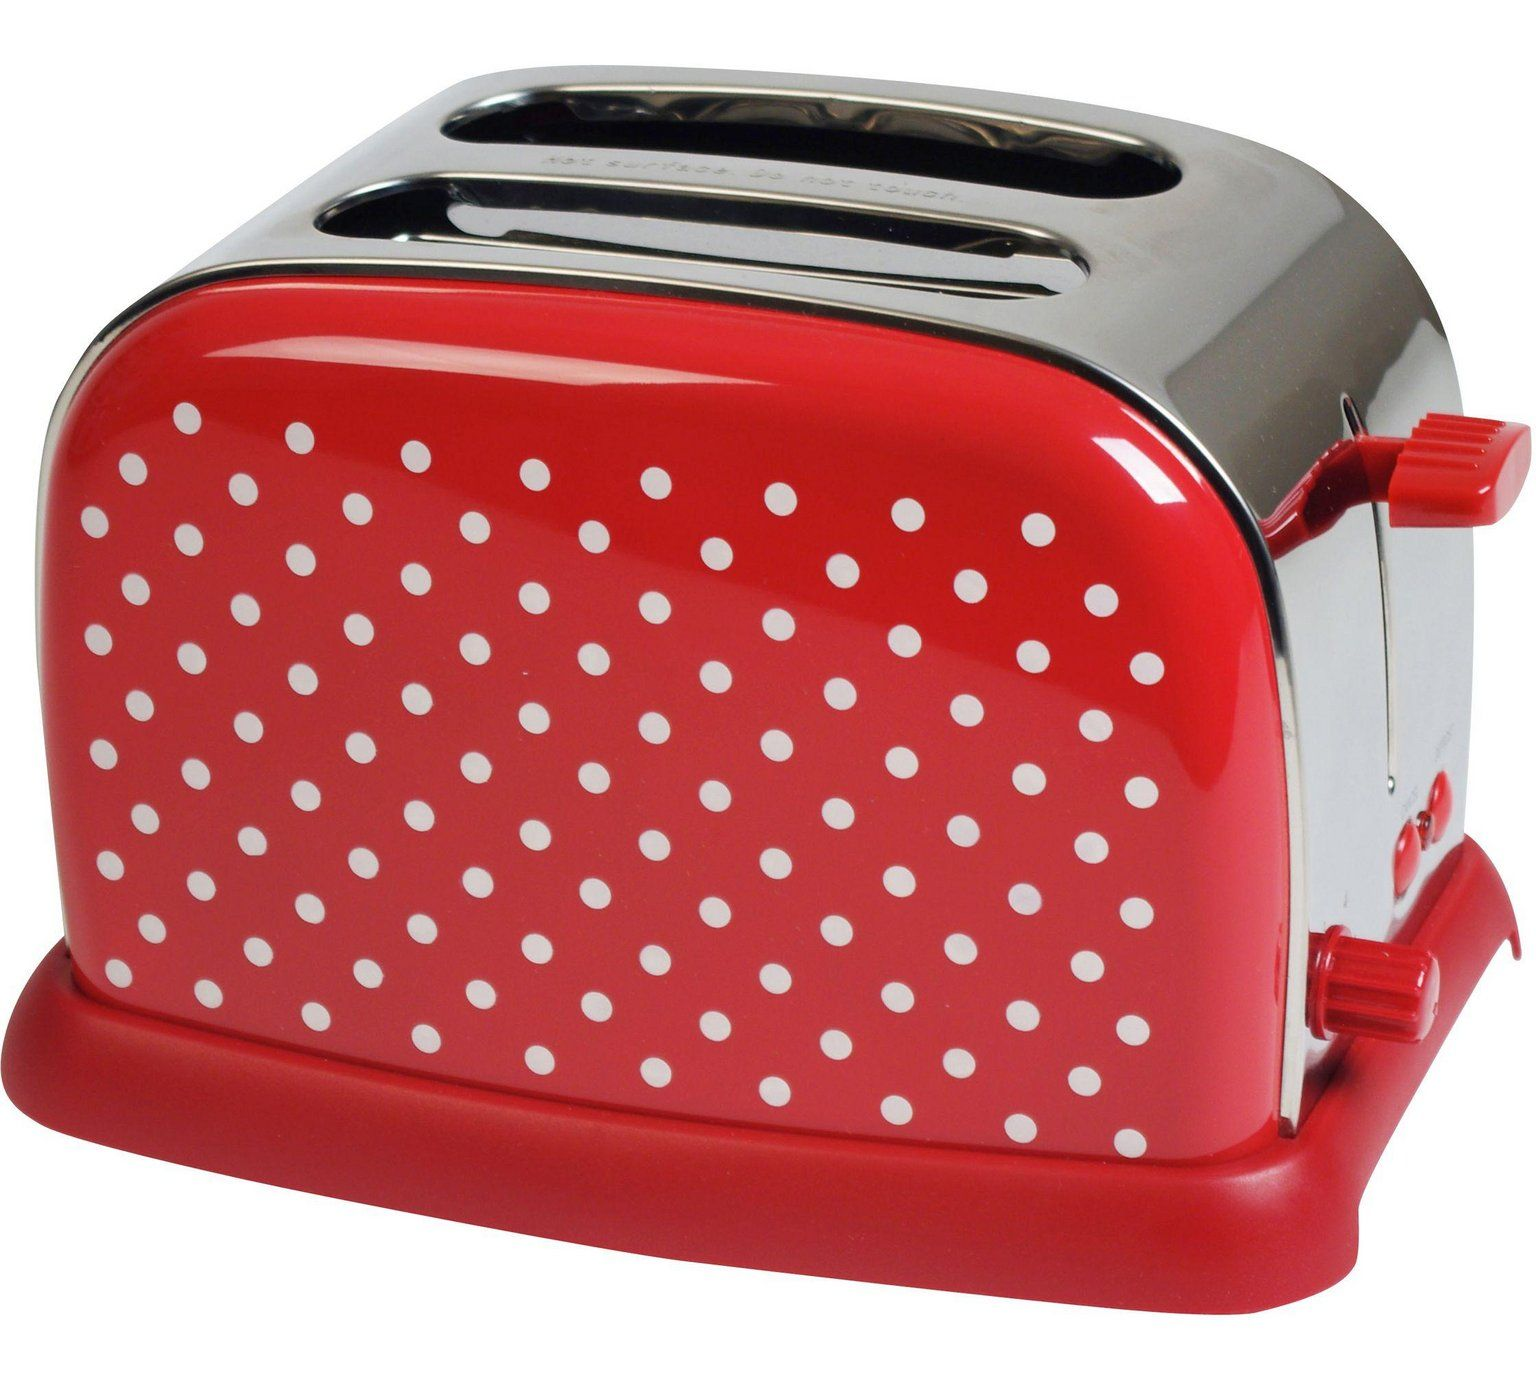 broiler brushed amazon oven of stainless oster slice new small unique toaster red and convection kalorik